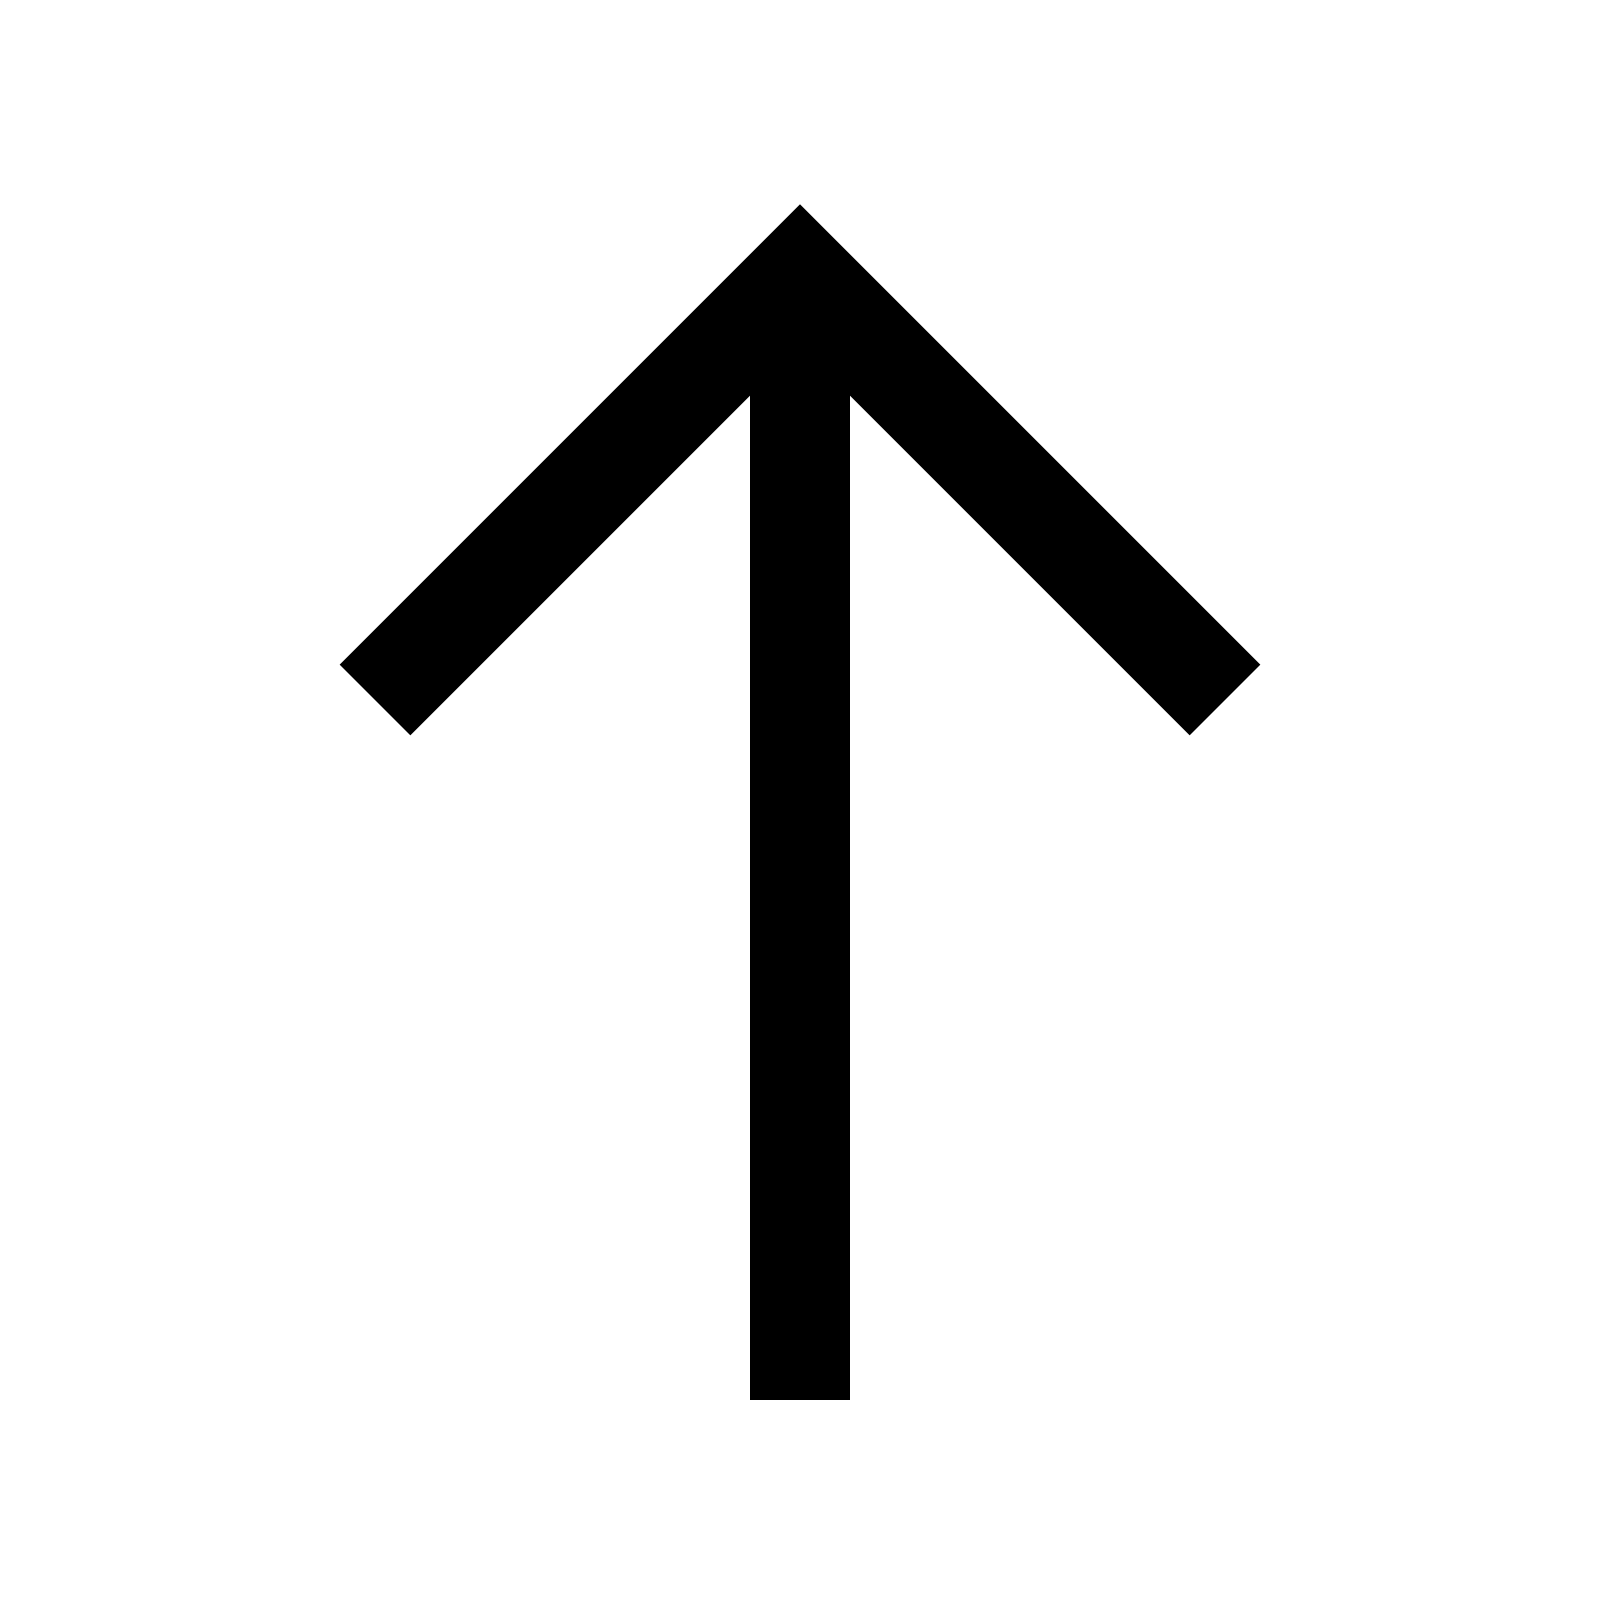 Up Arrow Image